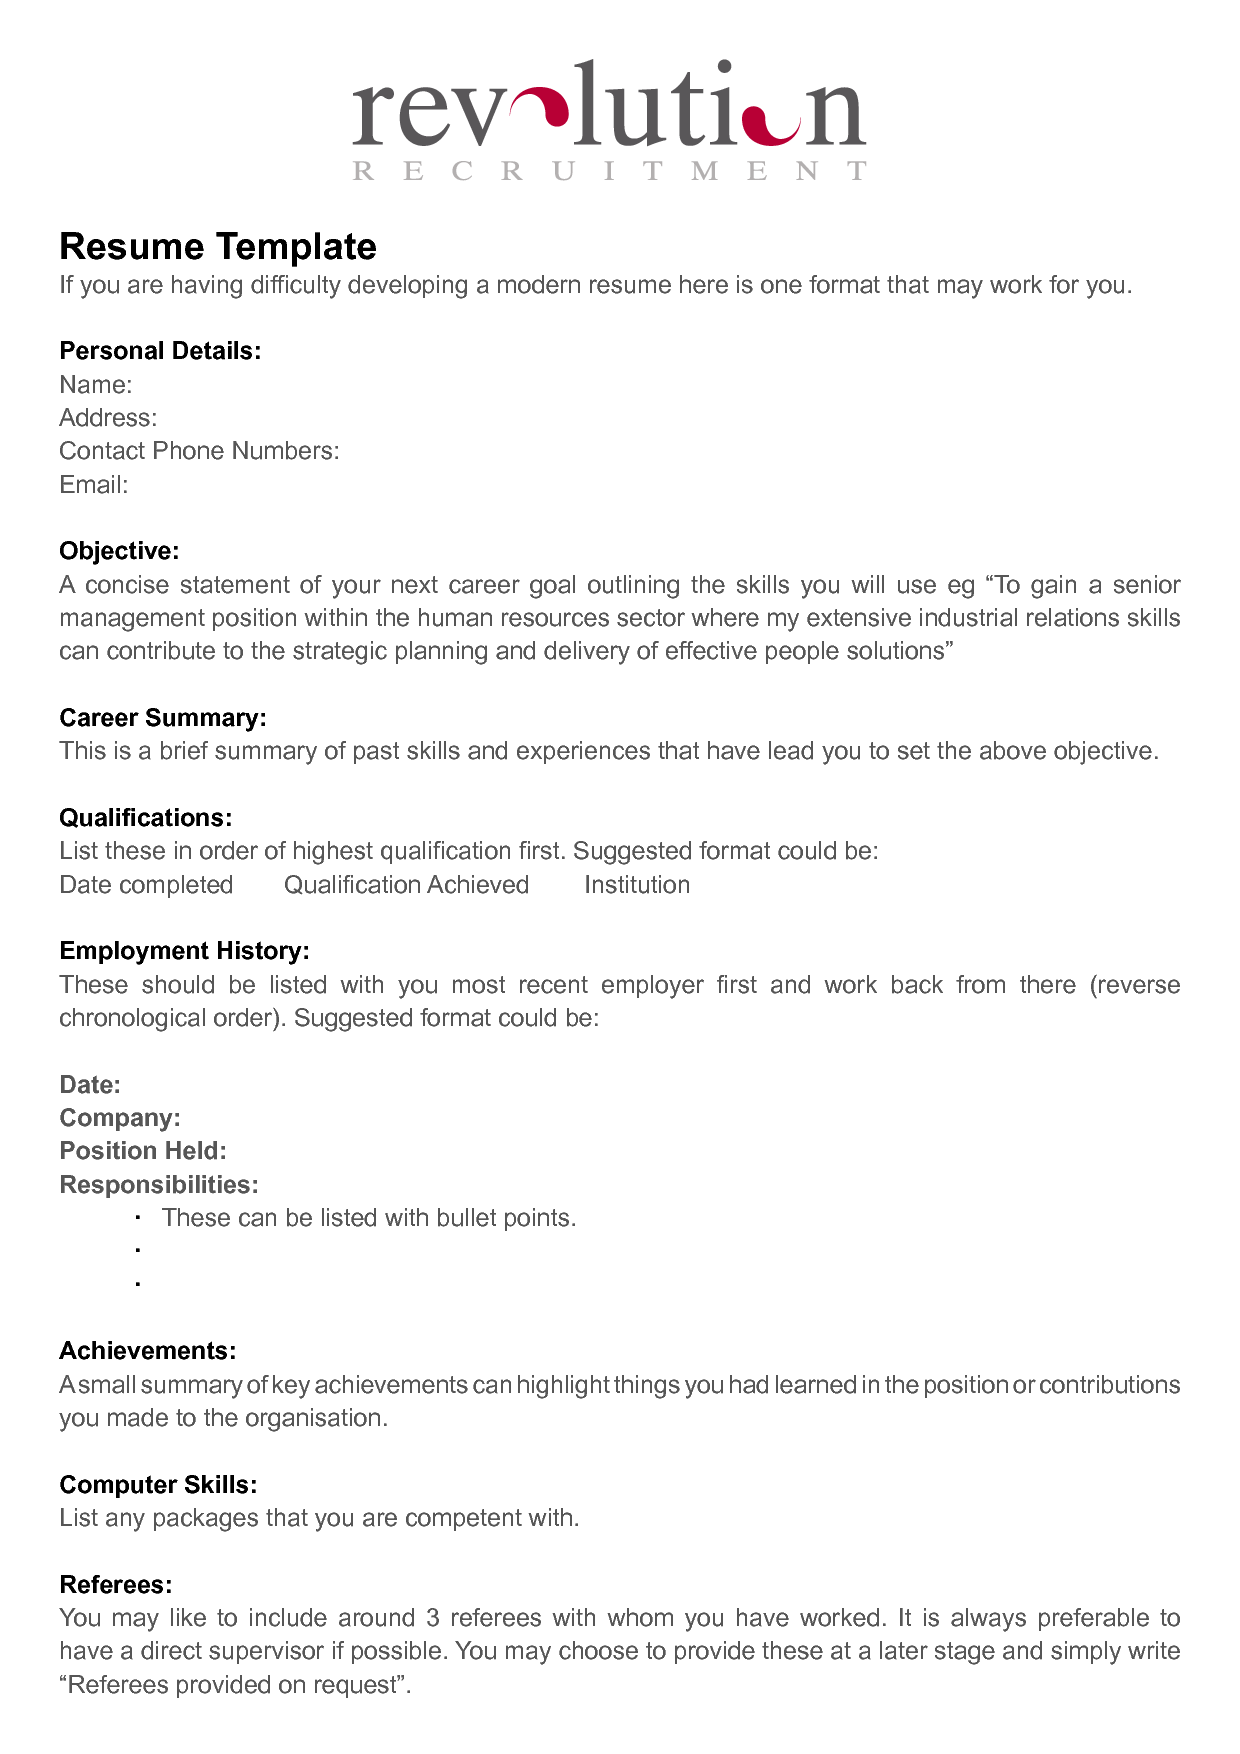 Free Resume Templates  Document Sample  Resumes